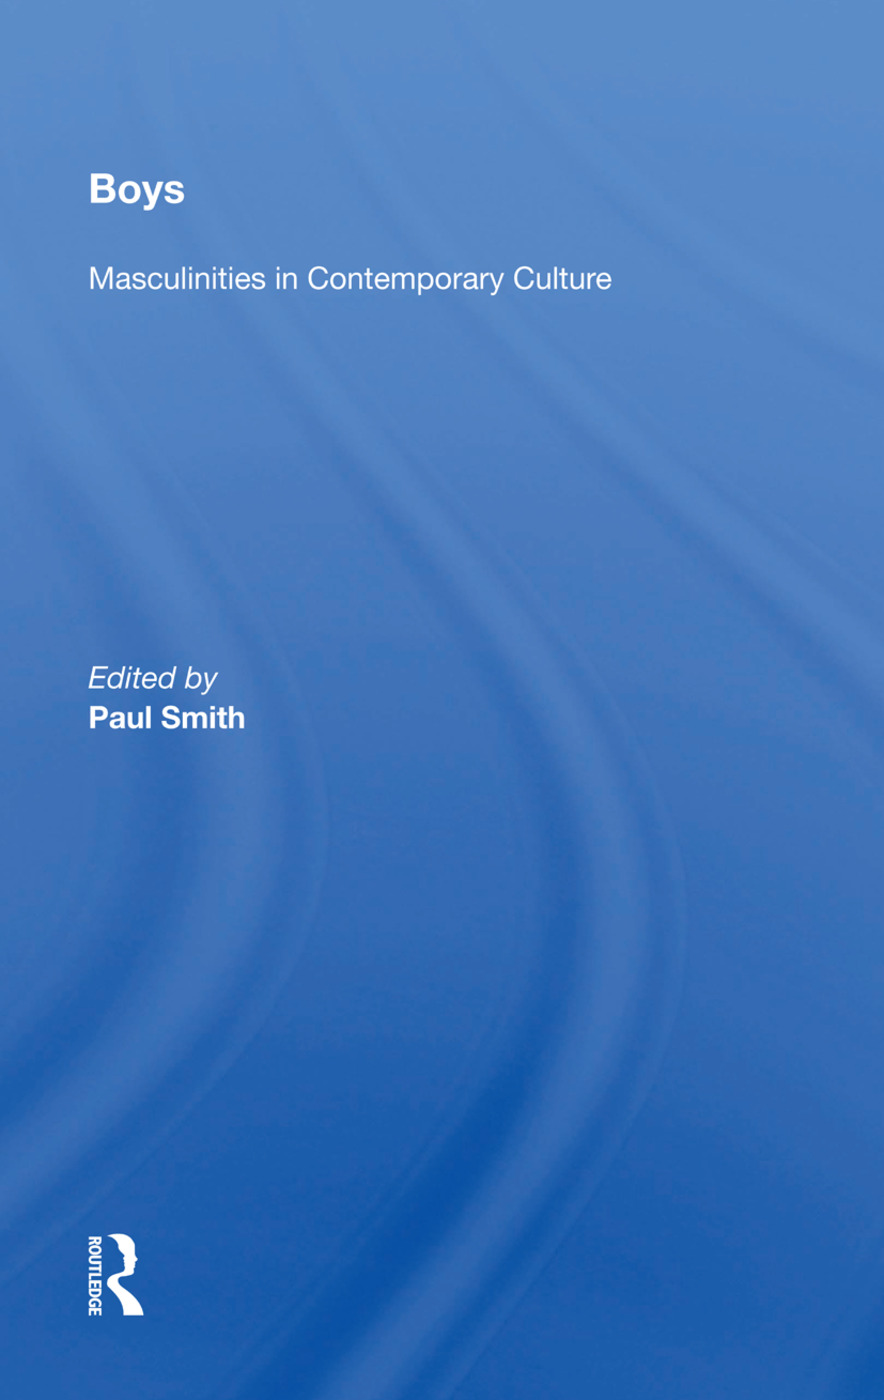 Boys: Masculinities In Contemporary Culture book cover